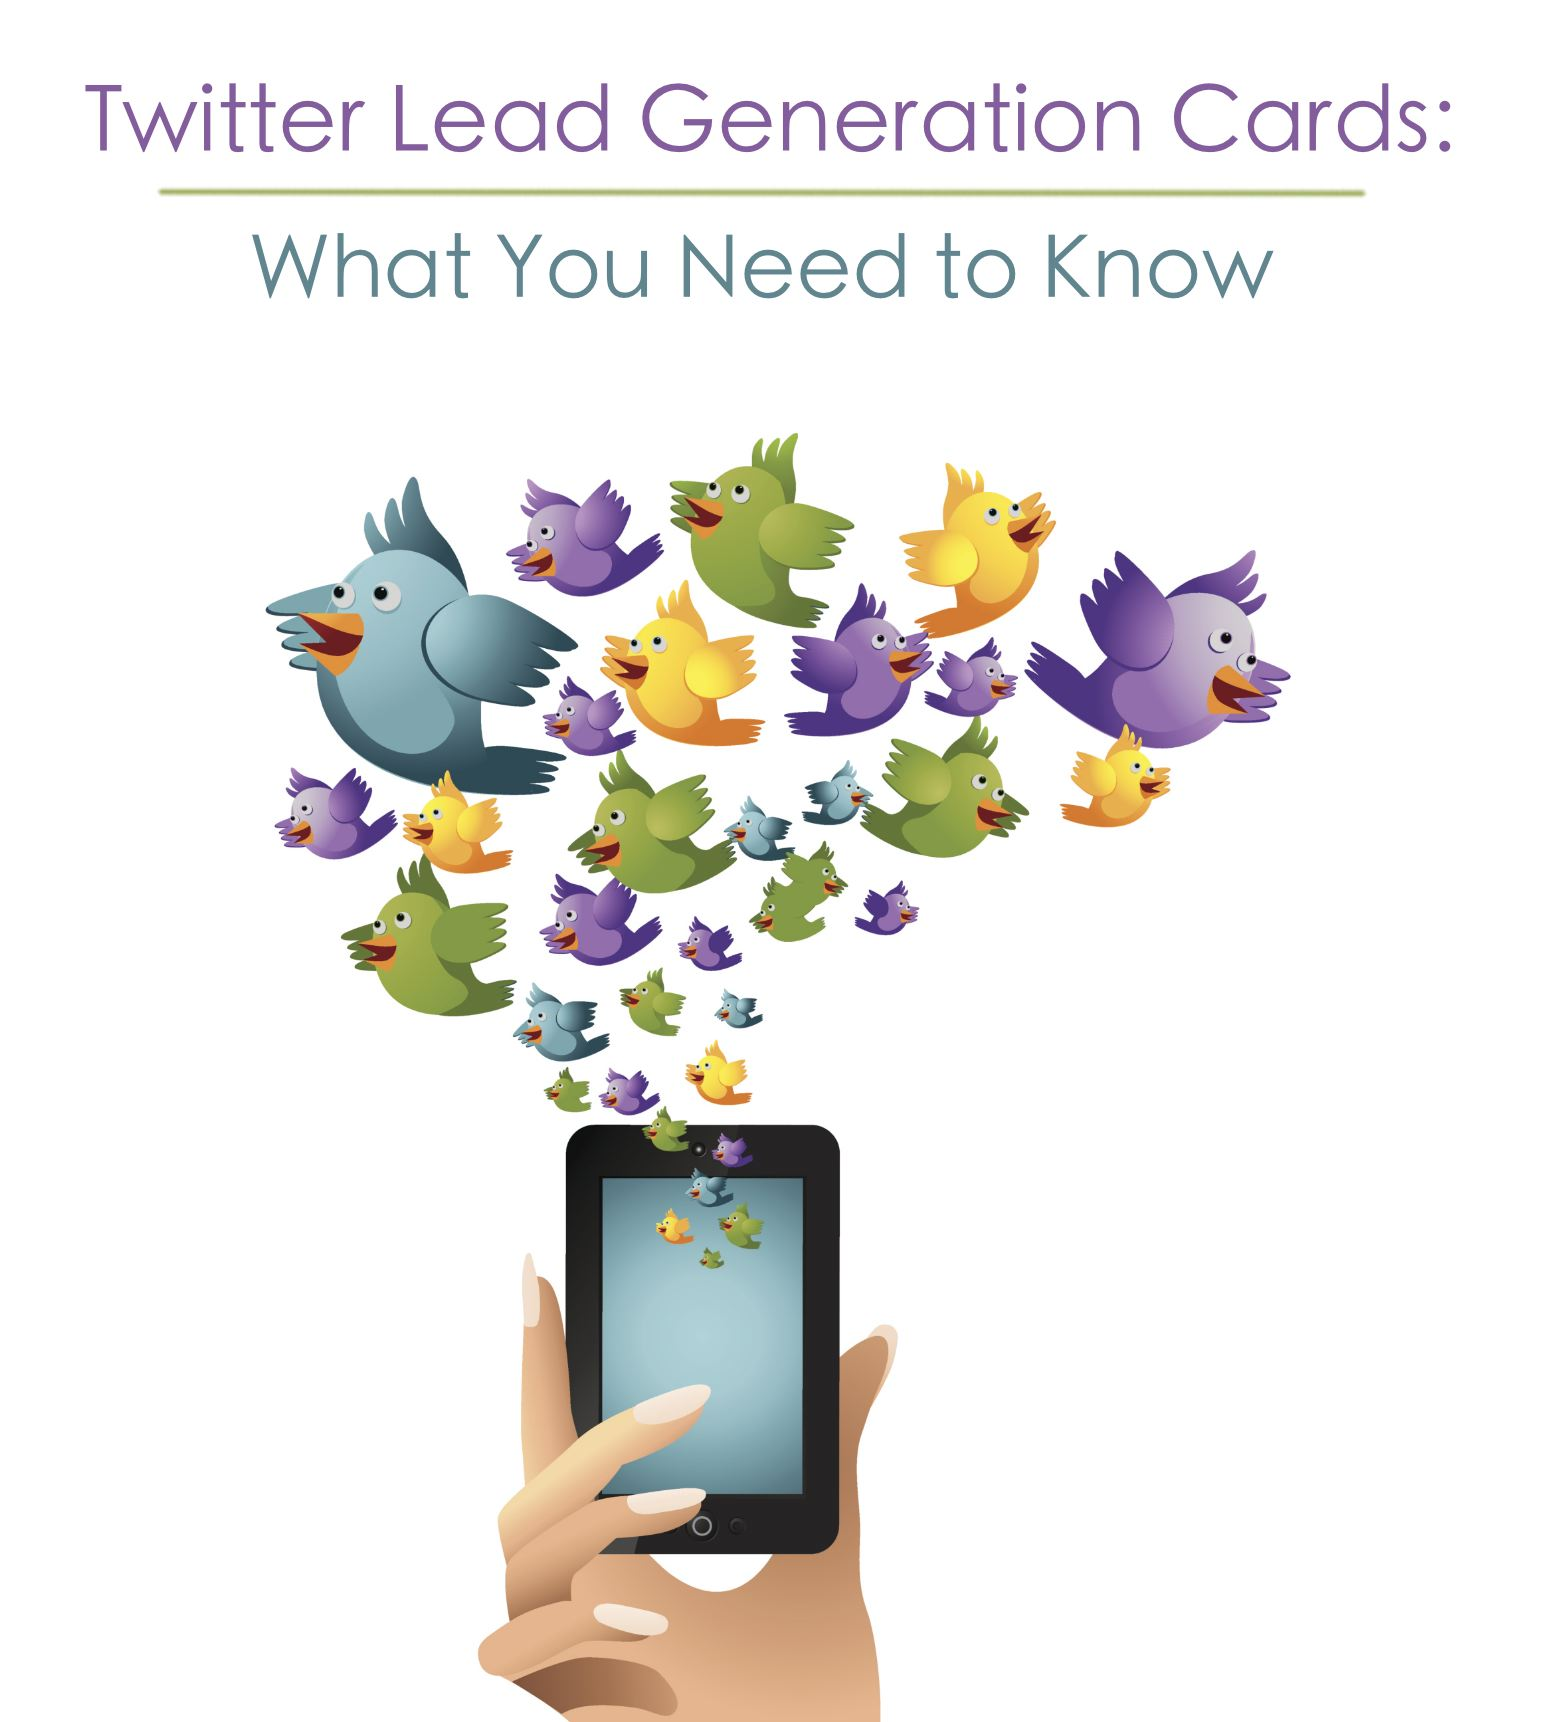 Twitter Lead Generation Cards: What You Need to Know